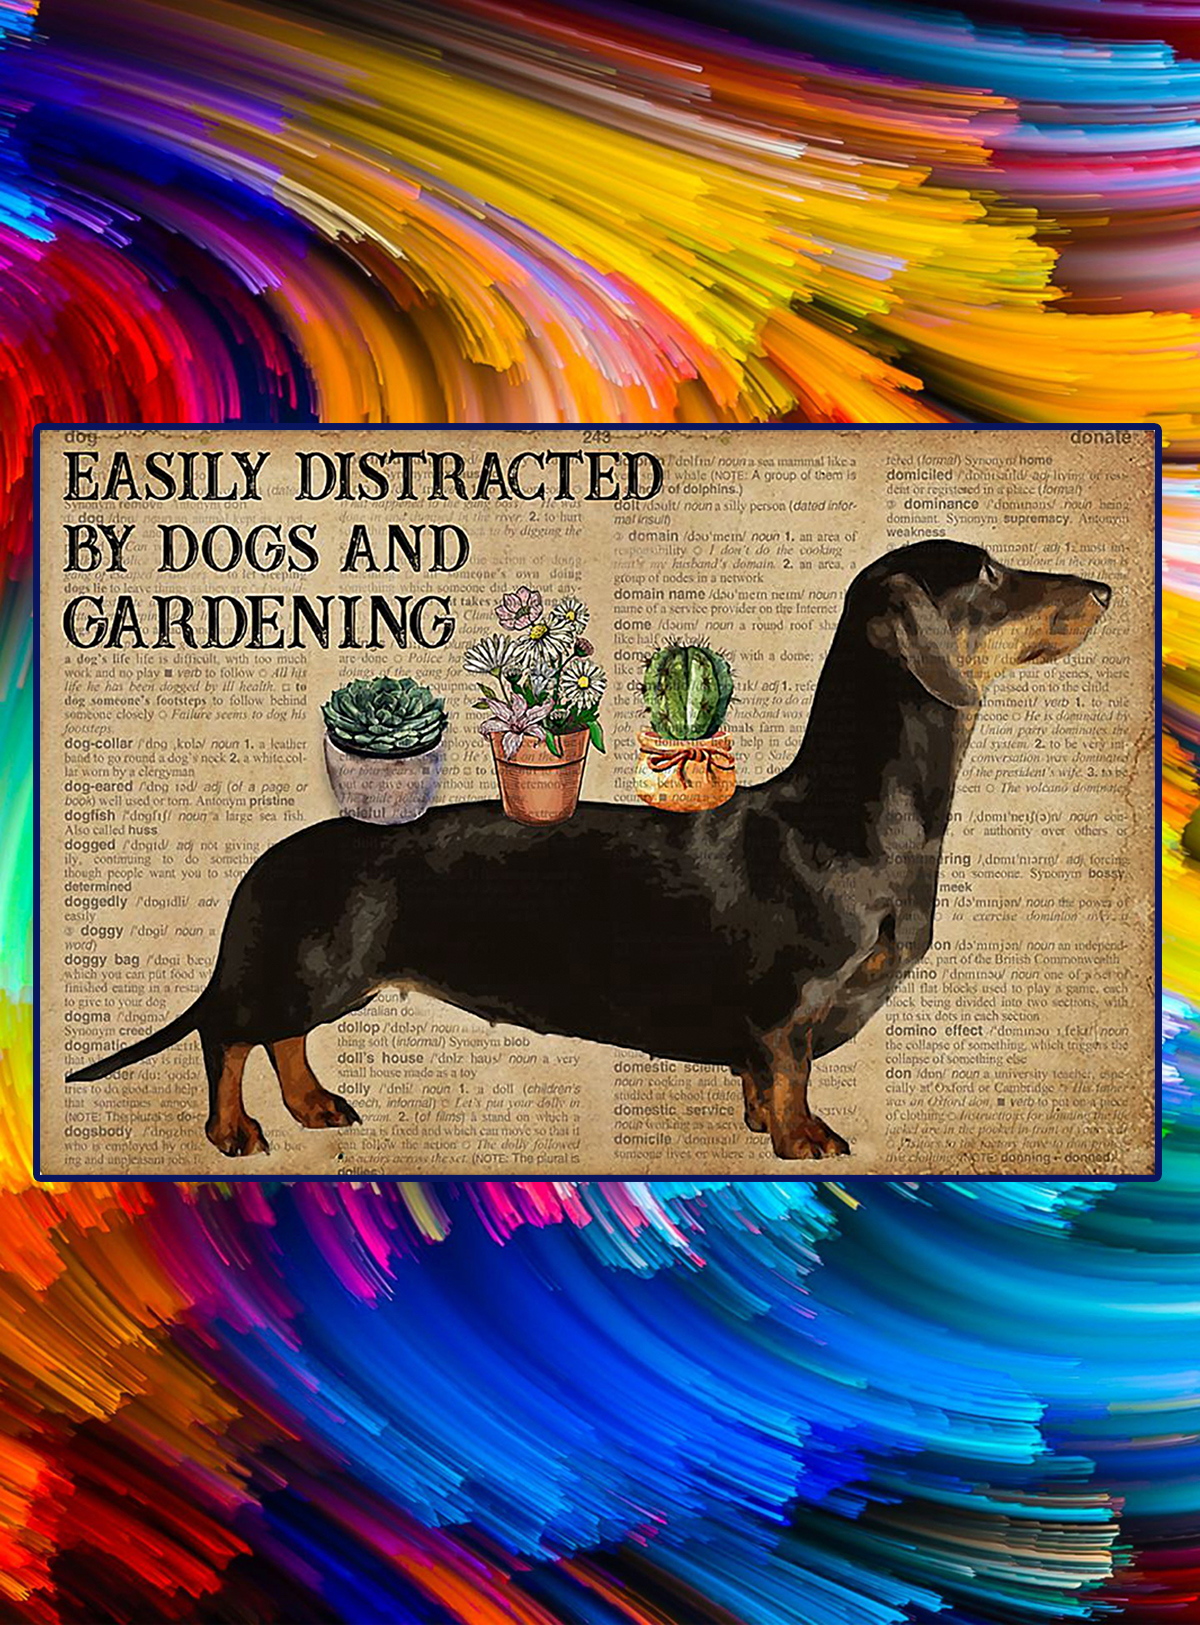 Dictionary easily distracted by dogs and gardening poster